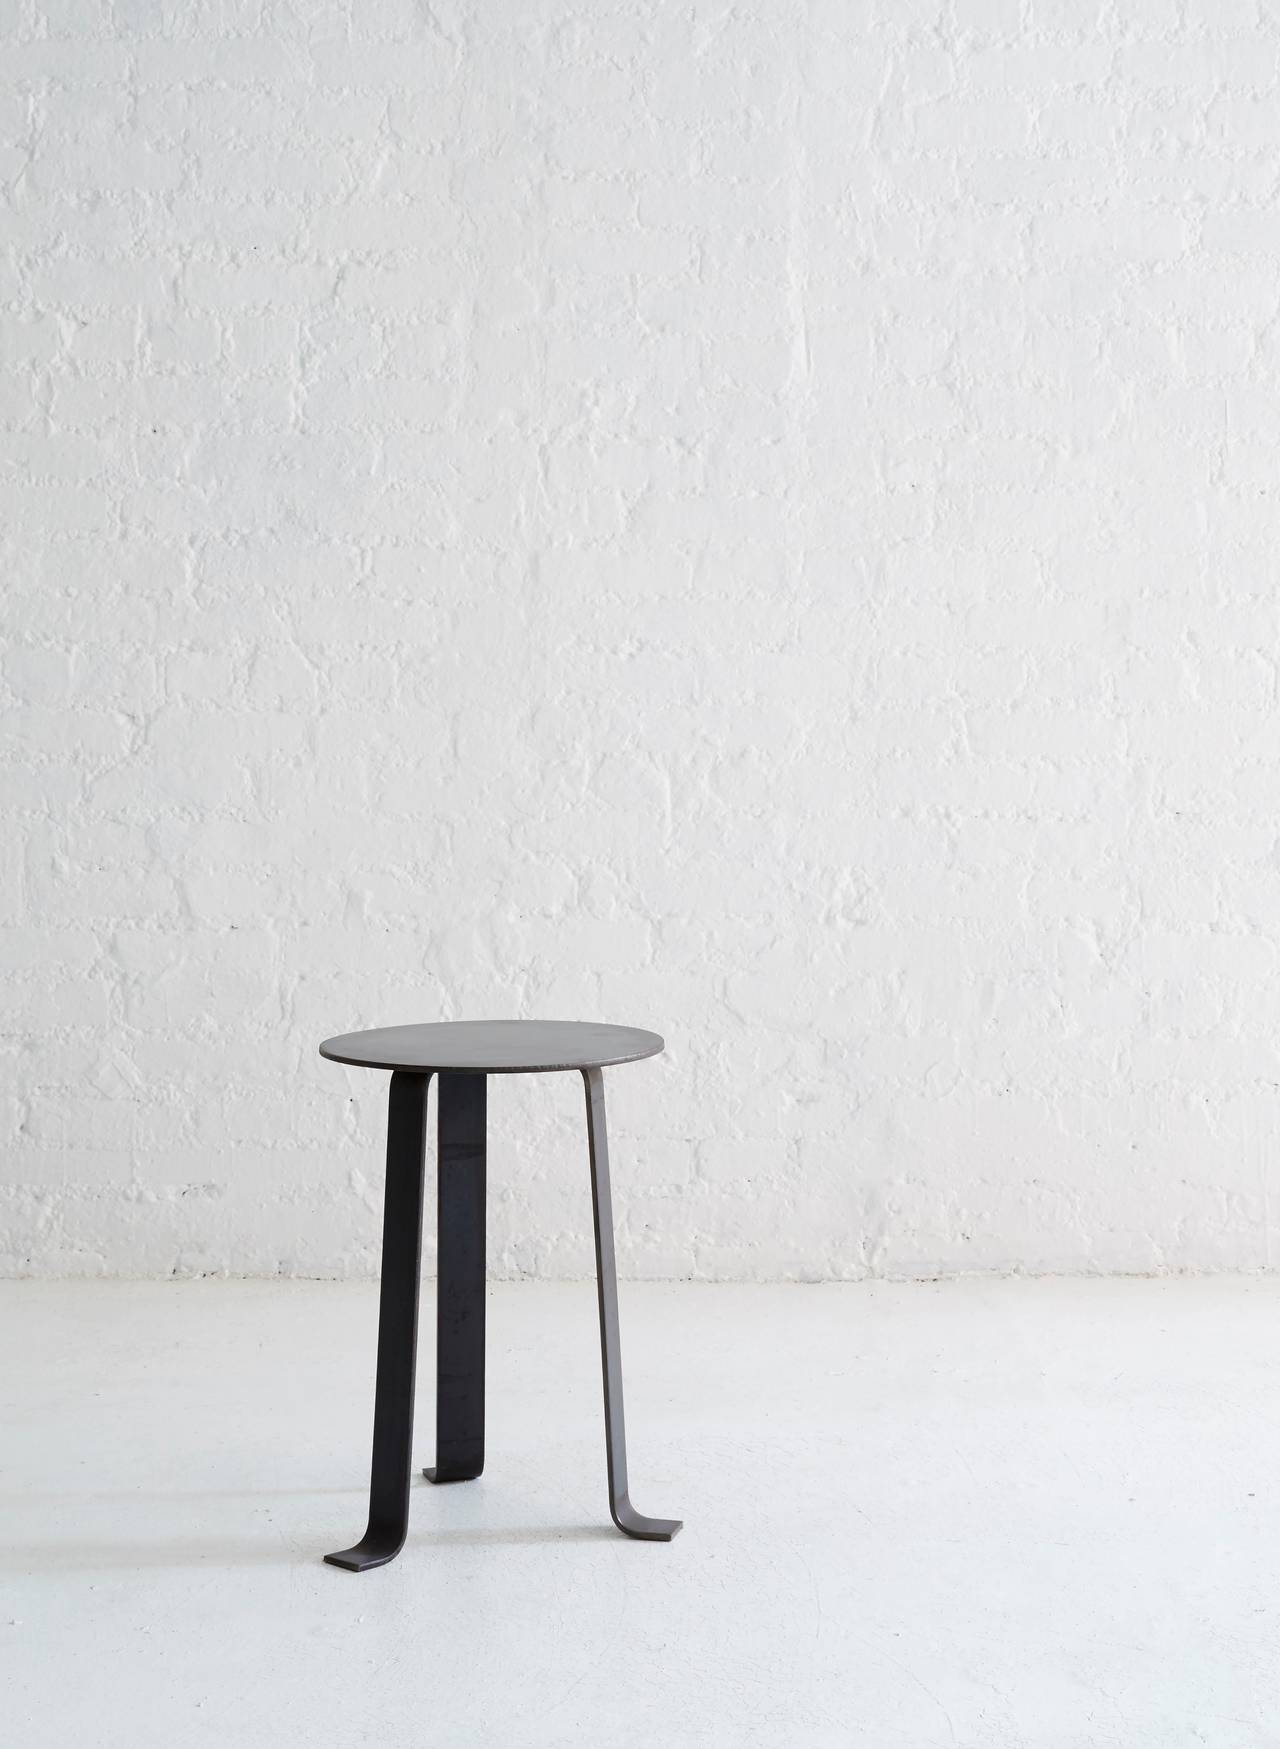 """The steel tripod stool has a classic silhouette, modernized in steel with design influences from Ignazio Gardella's """"Digamma"""" chair and Charlotte Perriand's """"Ombra Tokyo"""" chair.  Available in four finishes: Raw steel. Black"""